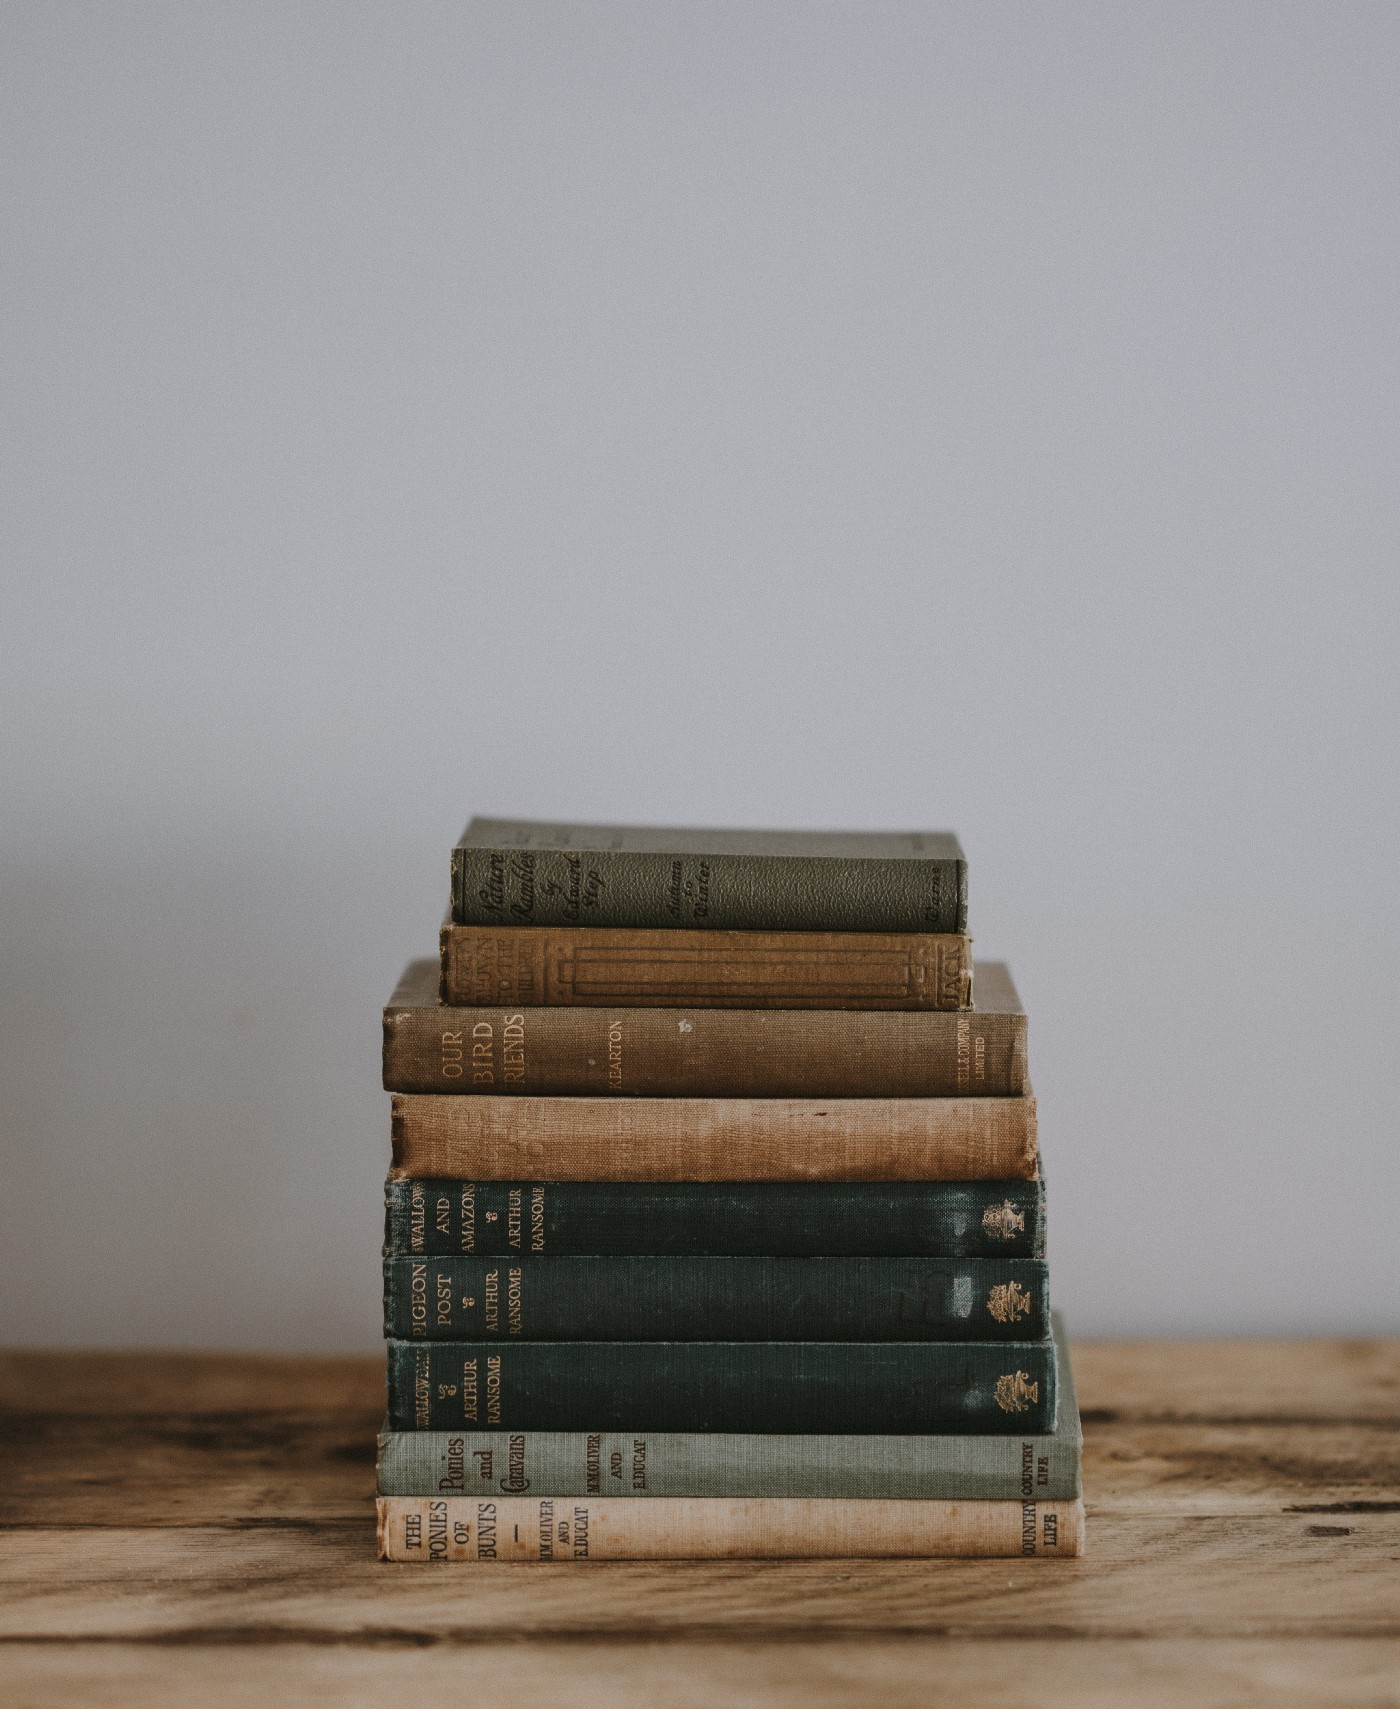 A stack of classic books